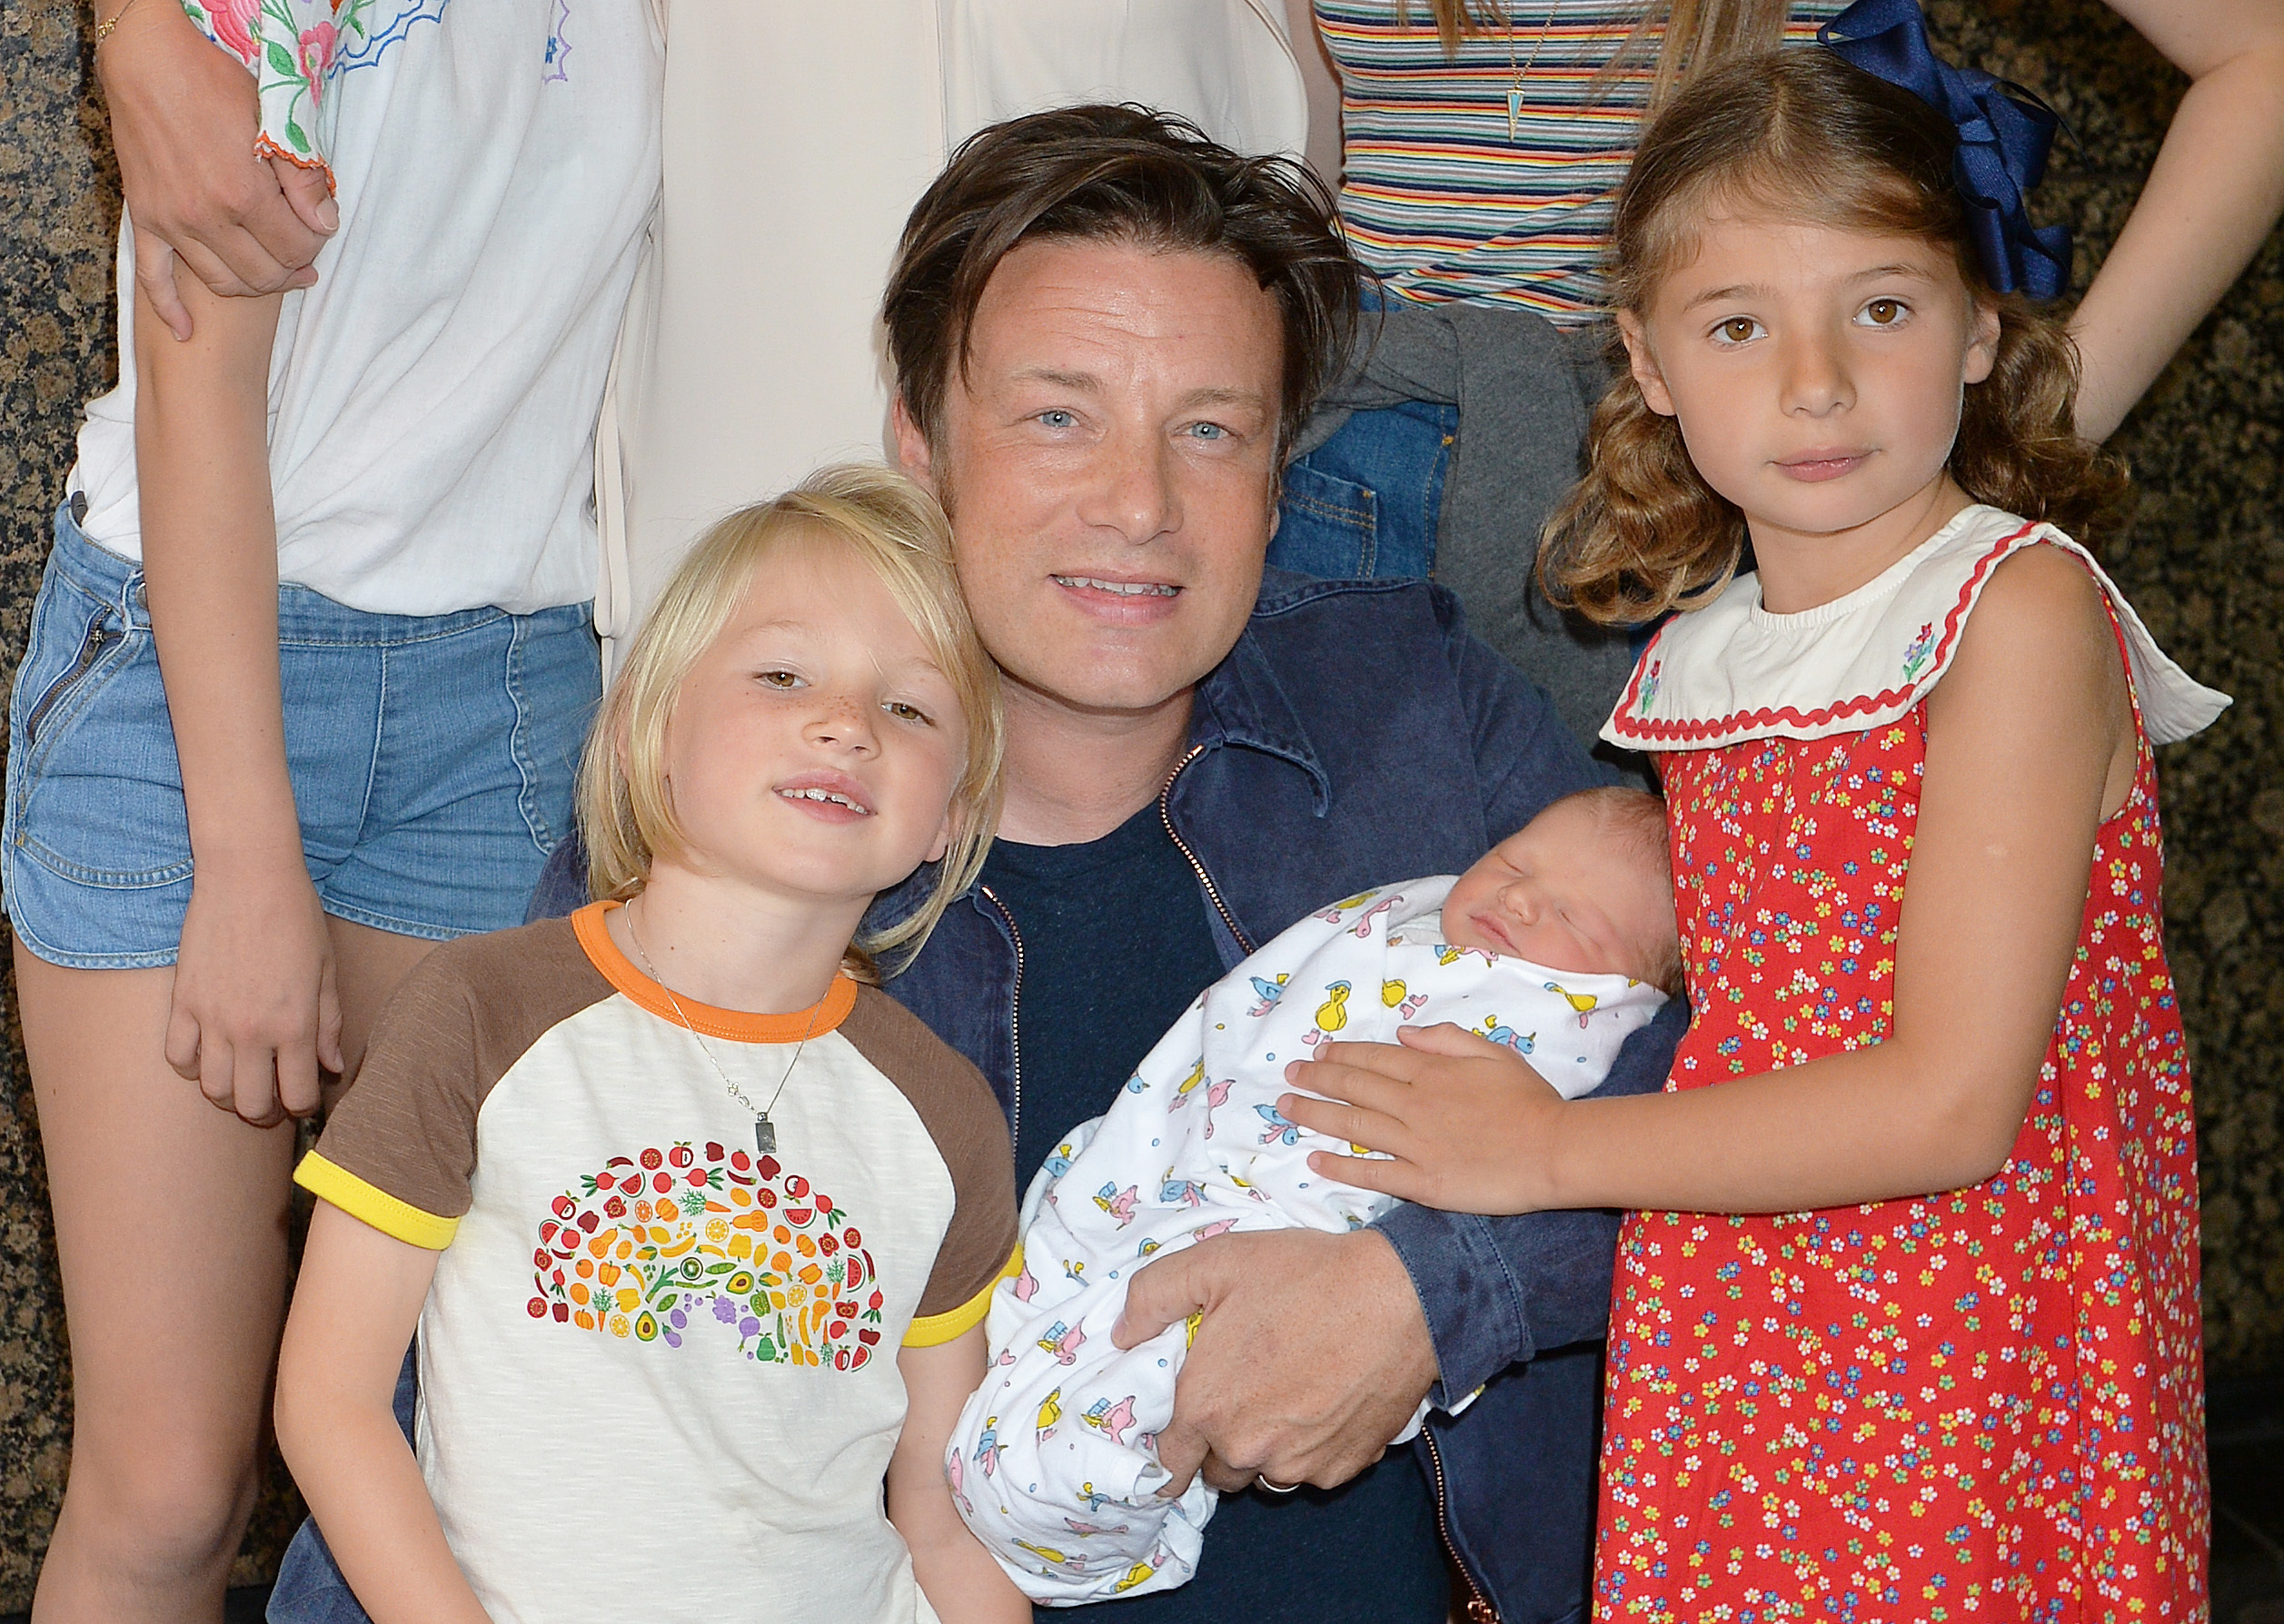 Jamie Oliver 'chases burglar and tackles him to ground'